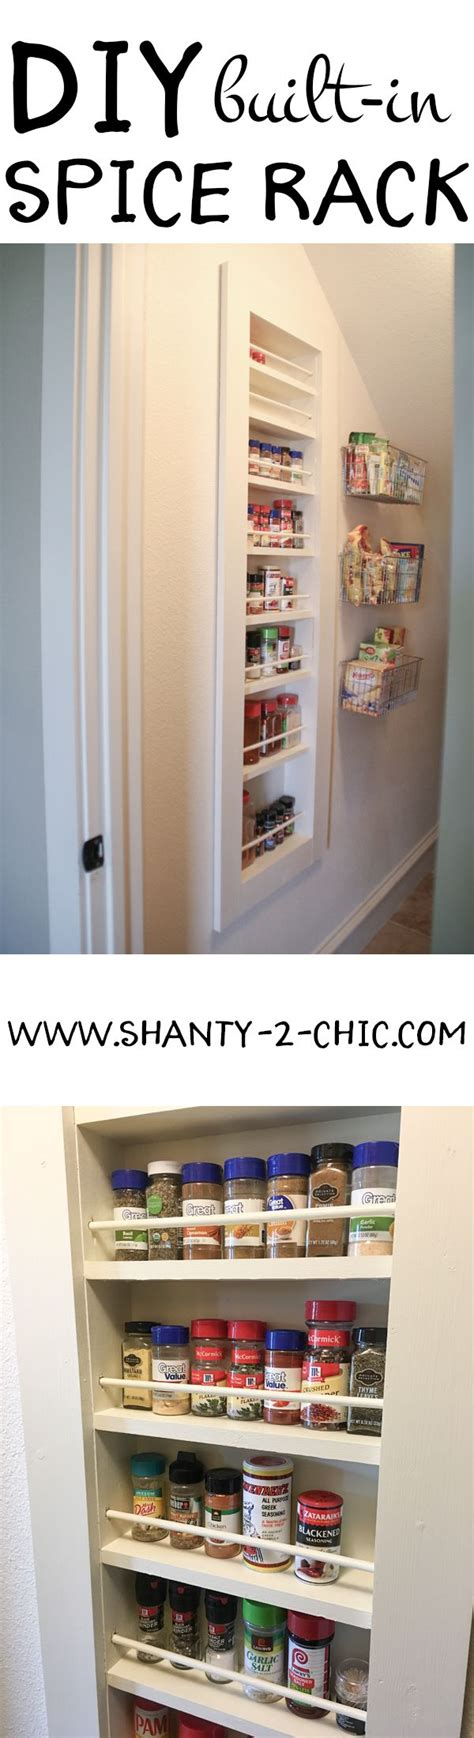 diy pantry spice rack diy built in spice rack diy spice rack and pantry